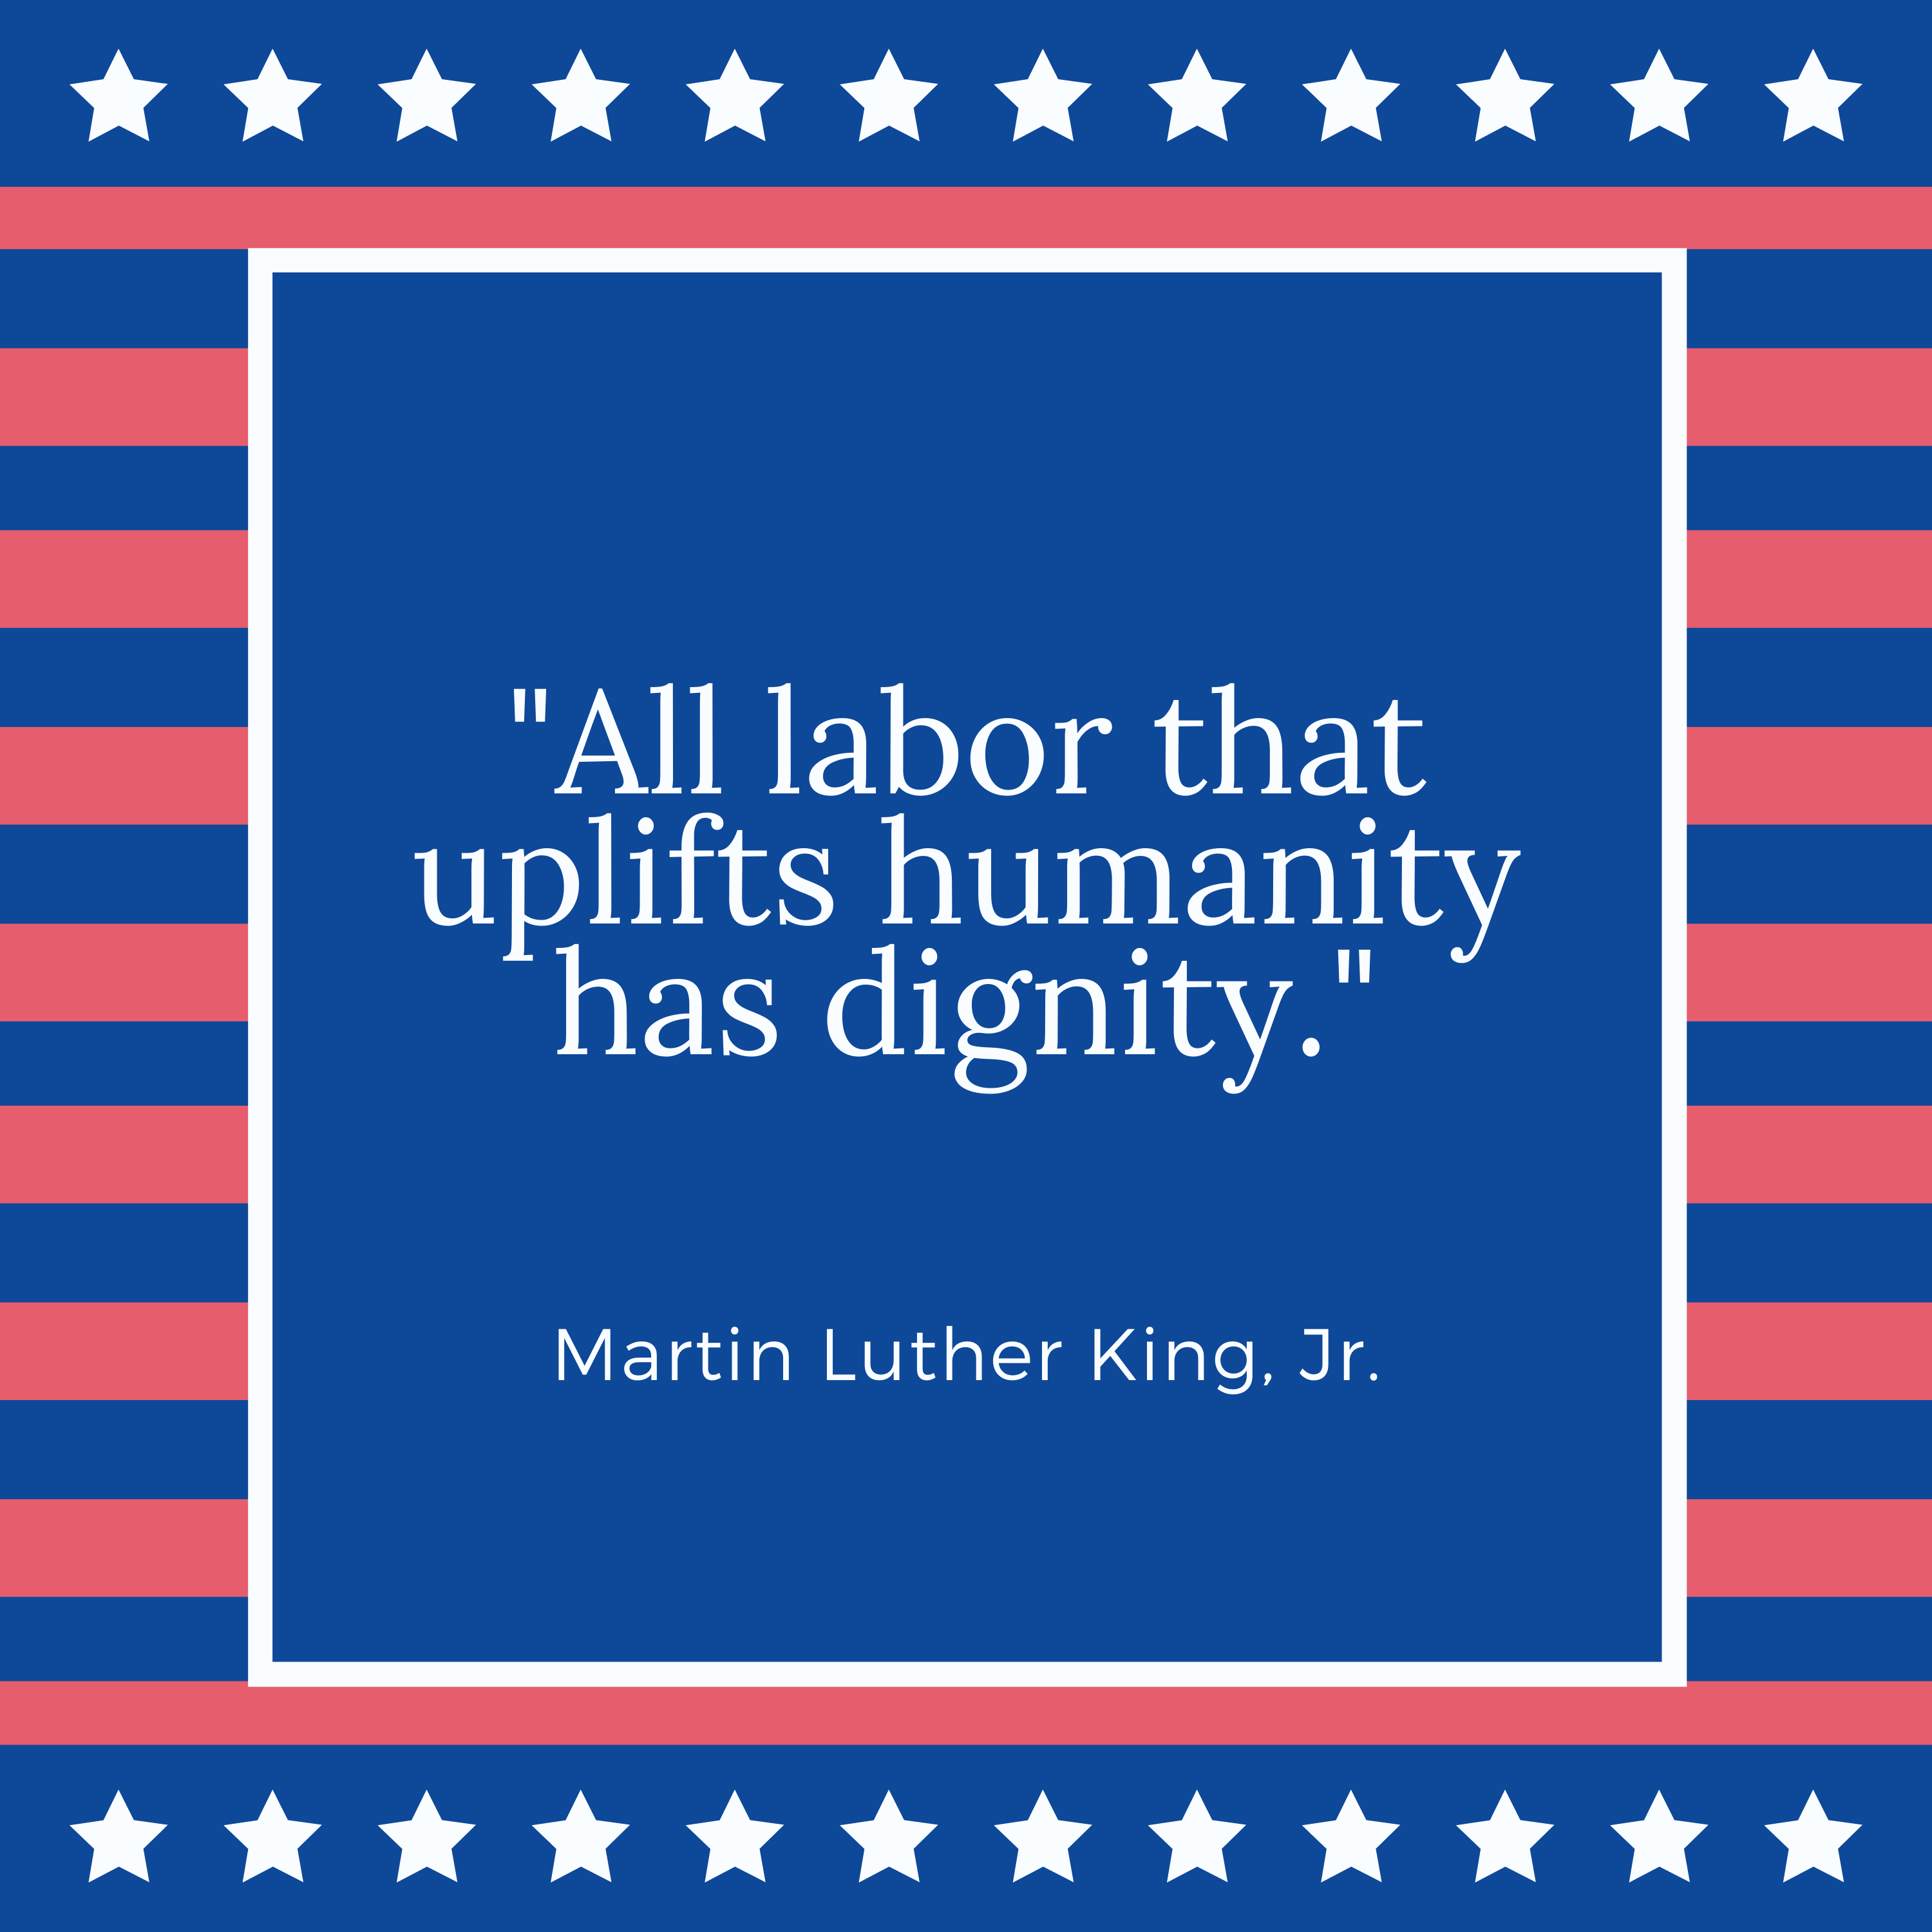 Labor Day Quotes - Martin Luther King, Jr.